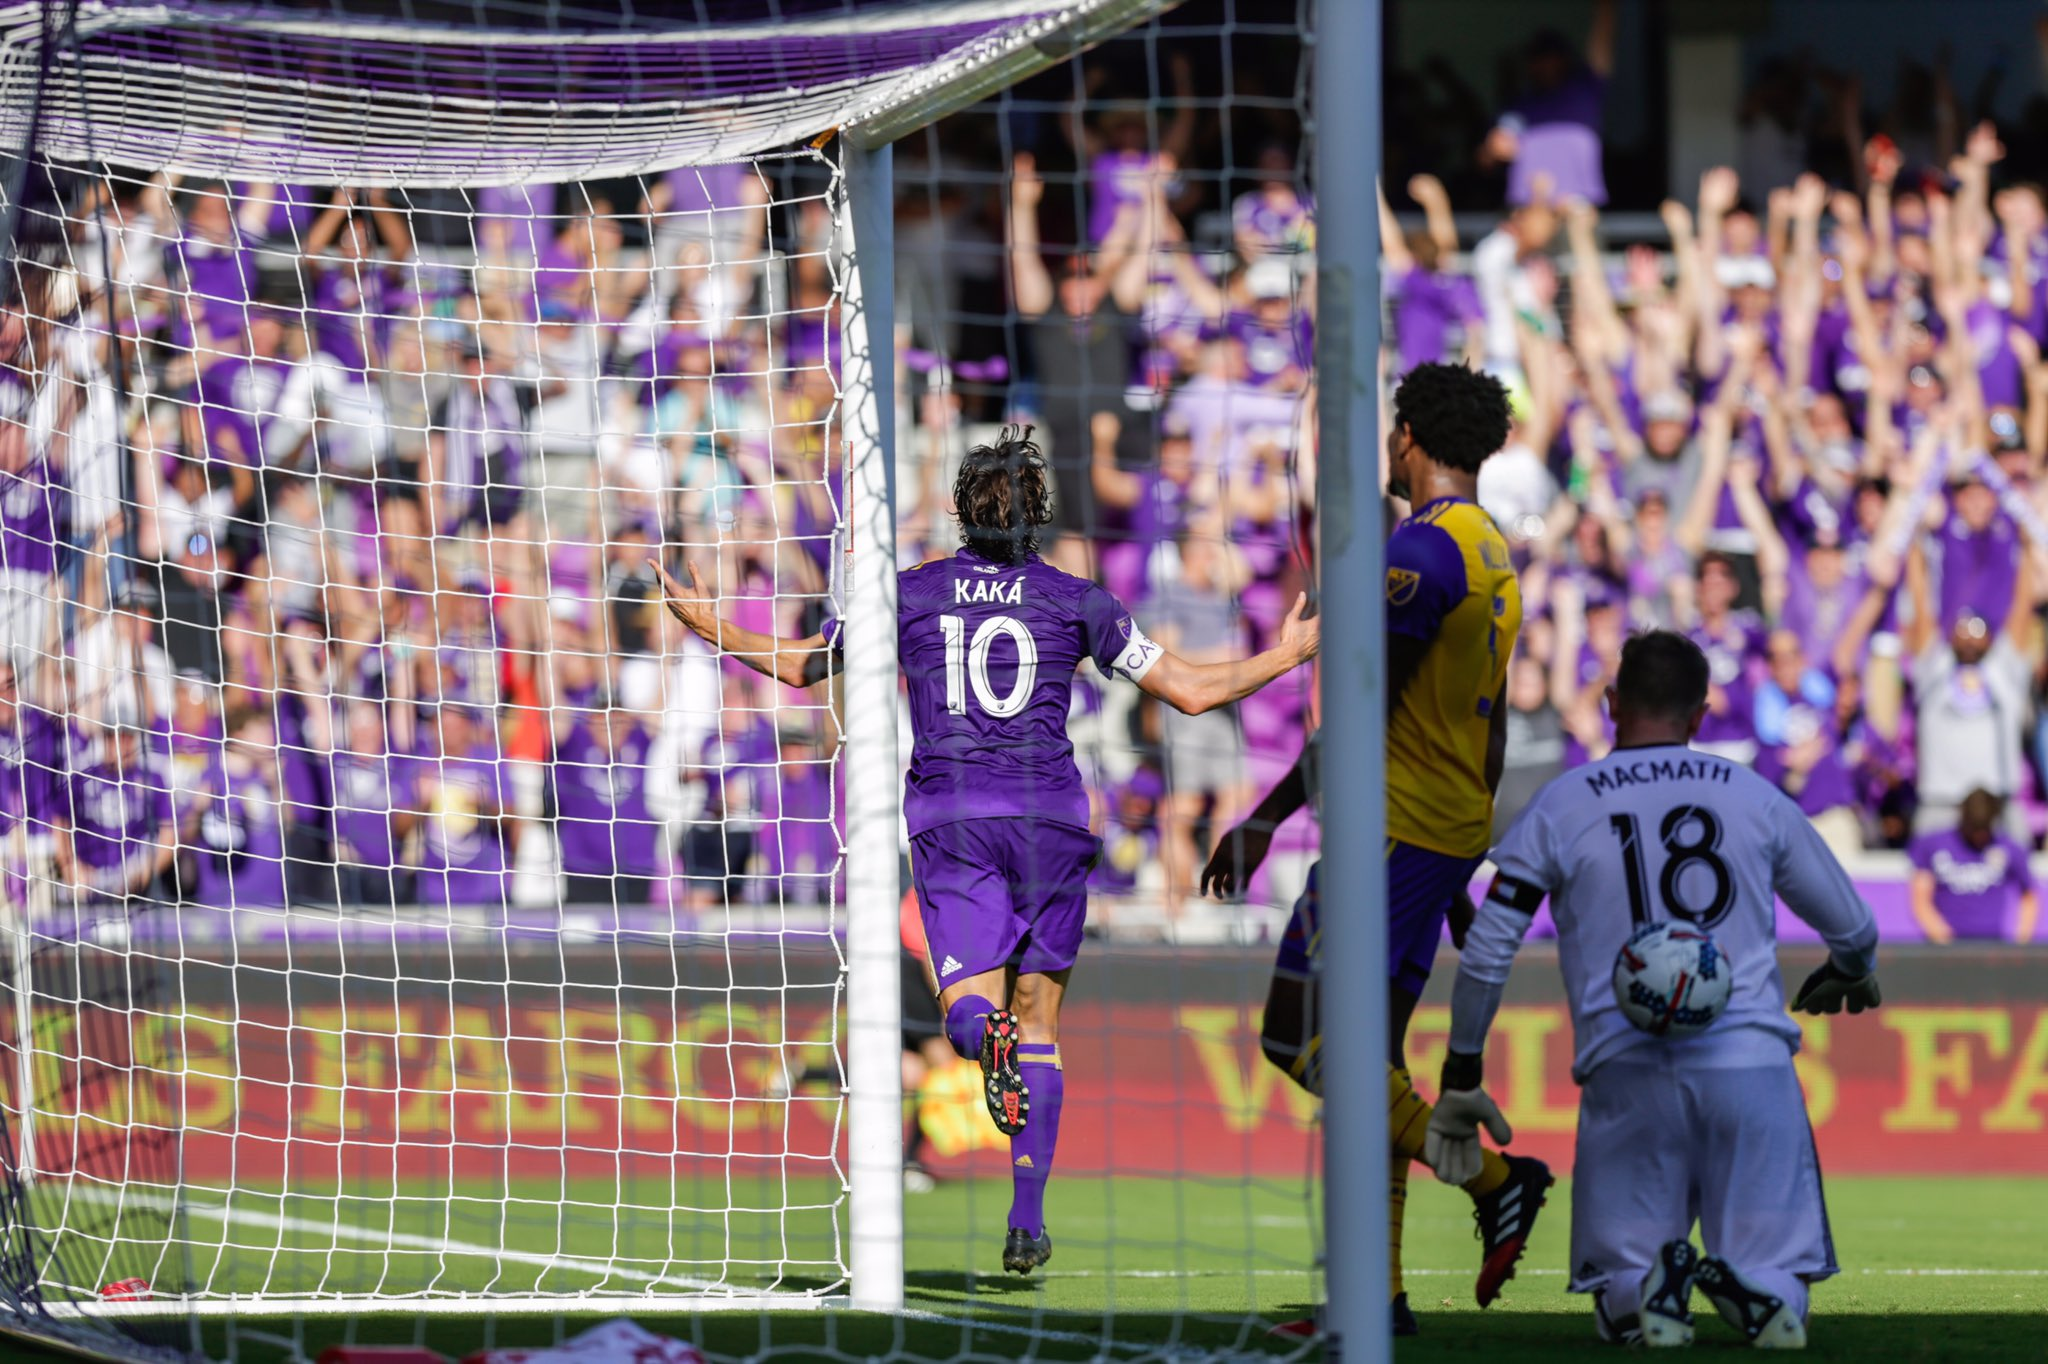 The moment that never ends.. ⚽️ #GoLions #TORvORL ☝��☝�� https://t.co/M5x5nyp1Pv